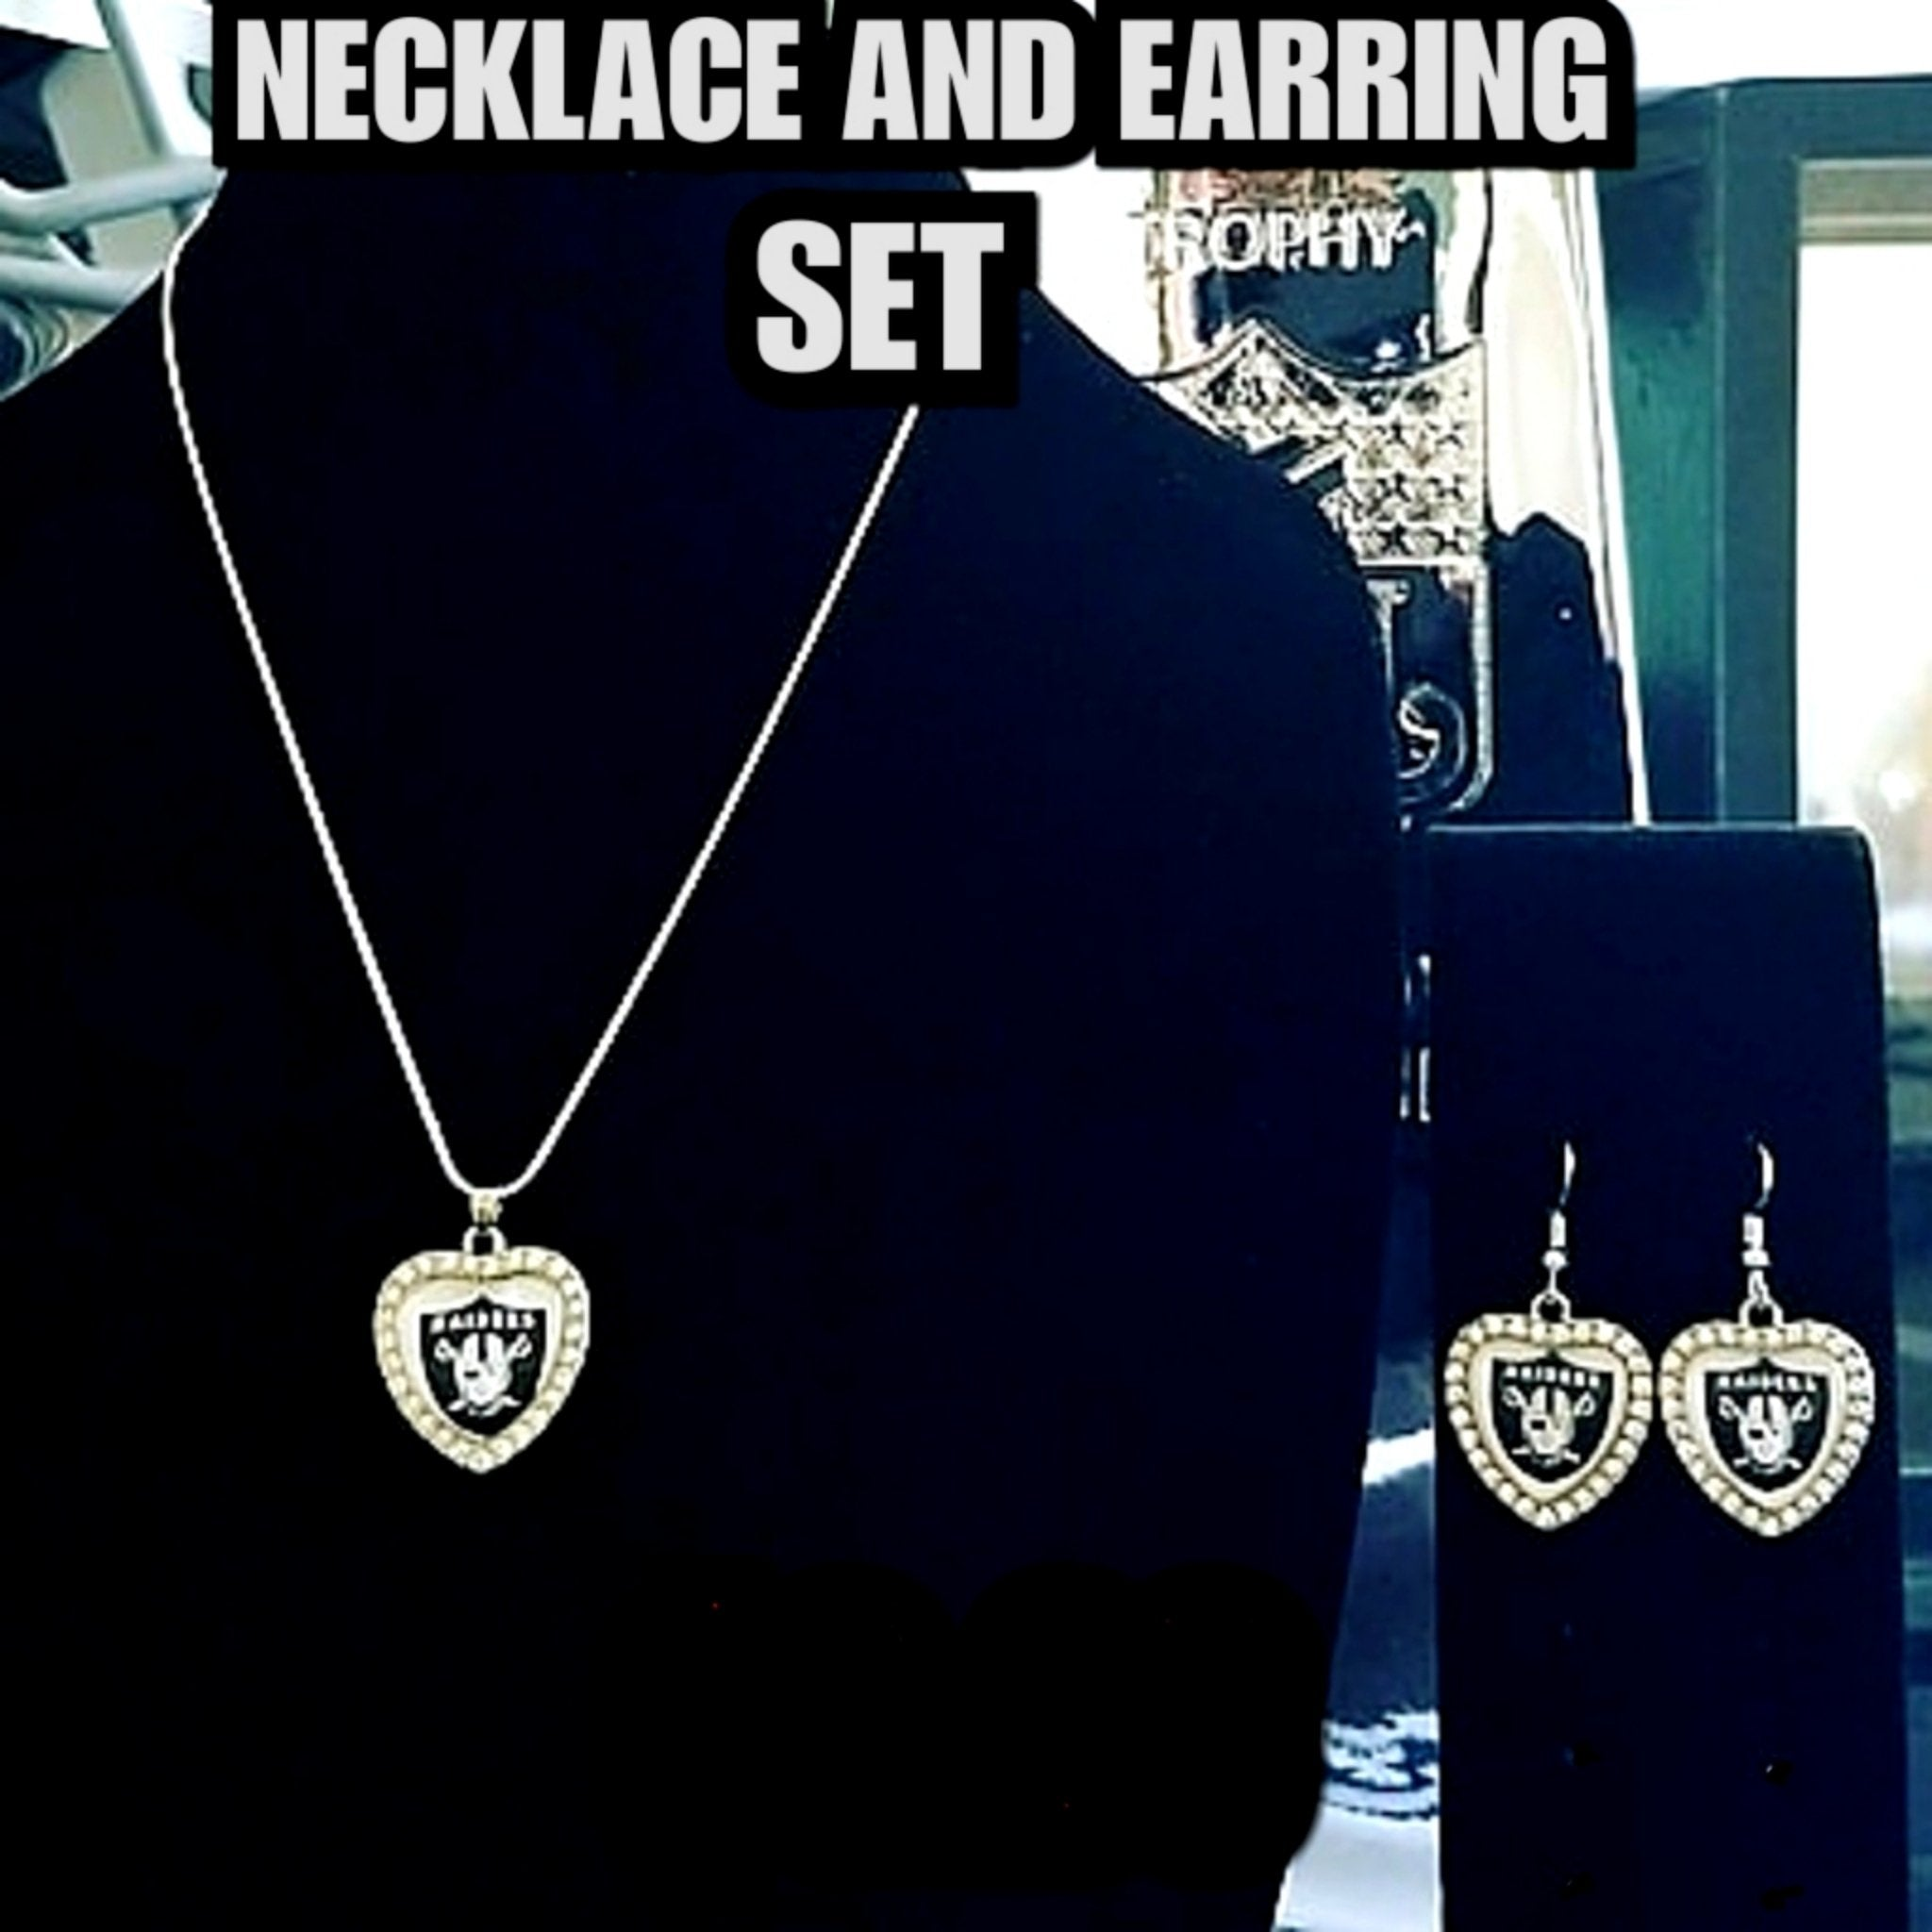 RAIDERS LADY NECKLACE AND EARRING SET-RaiderNationStore